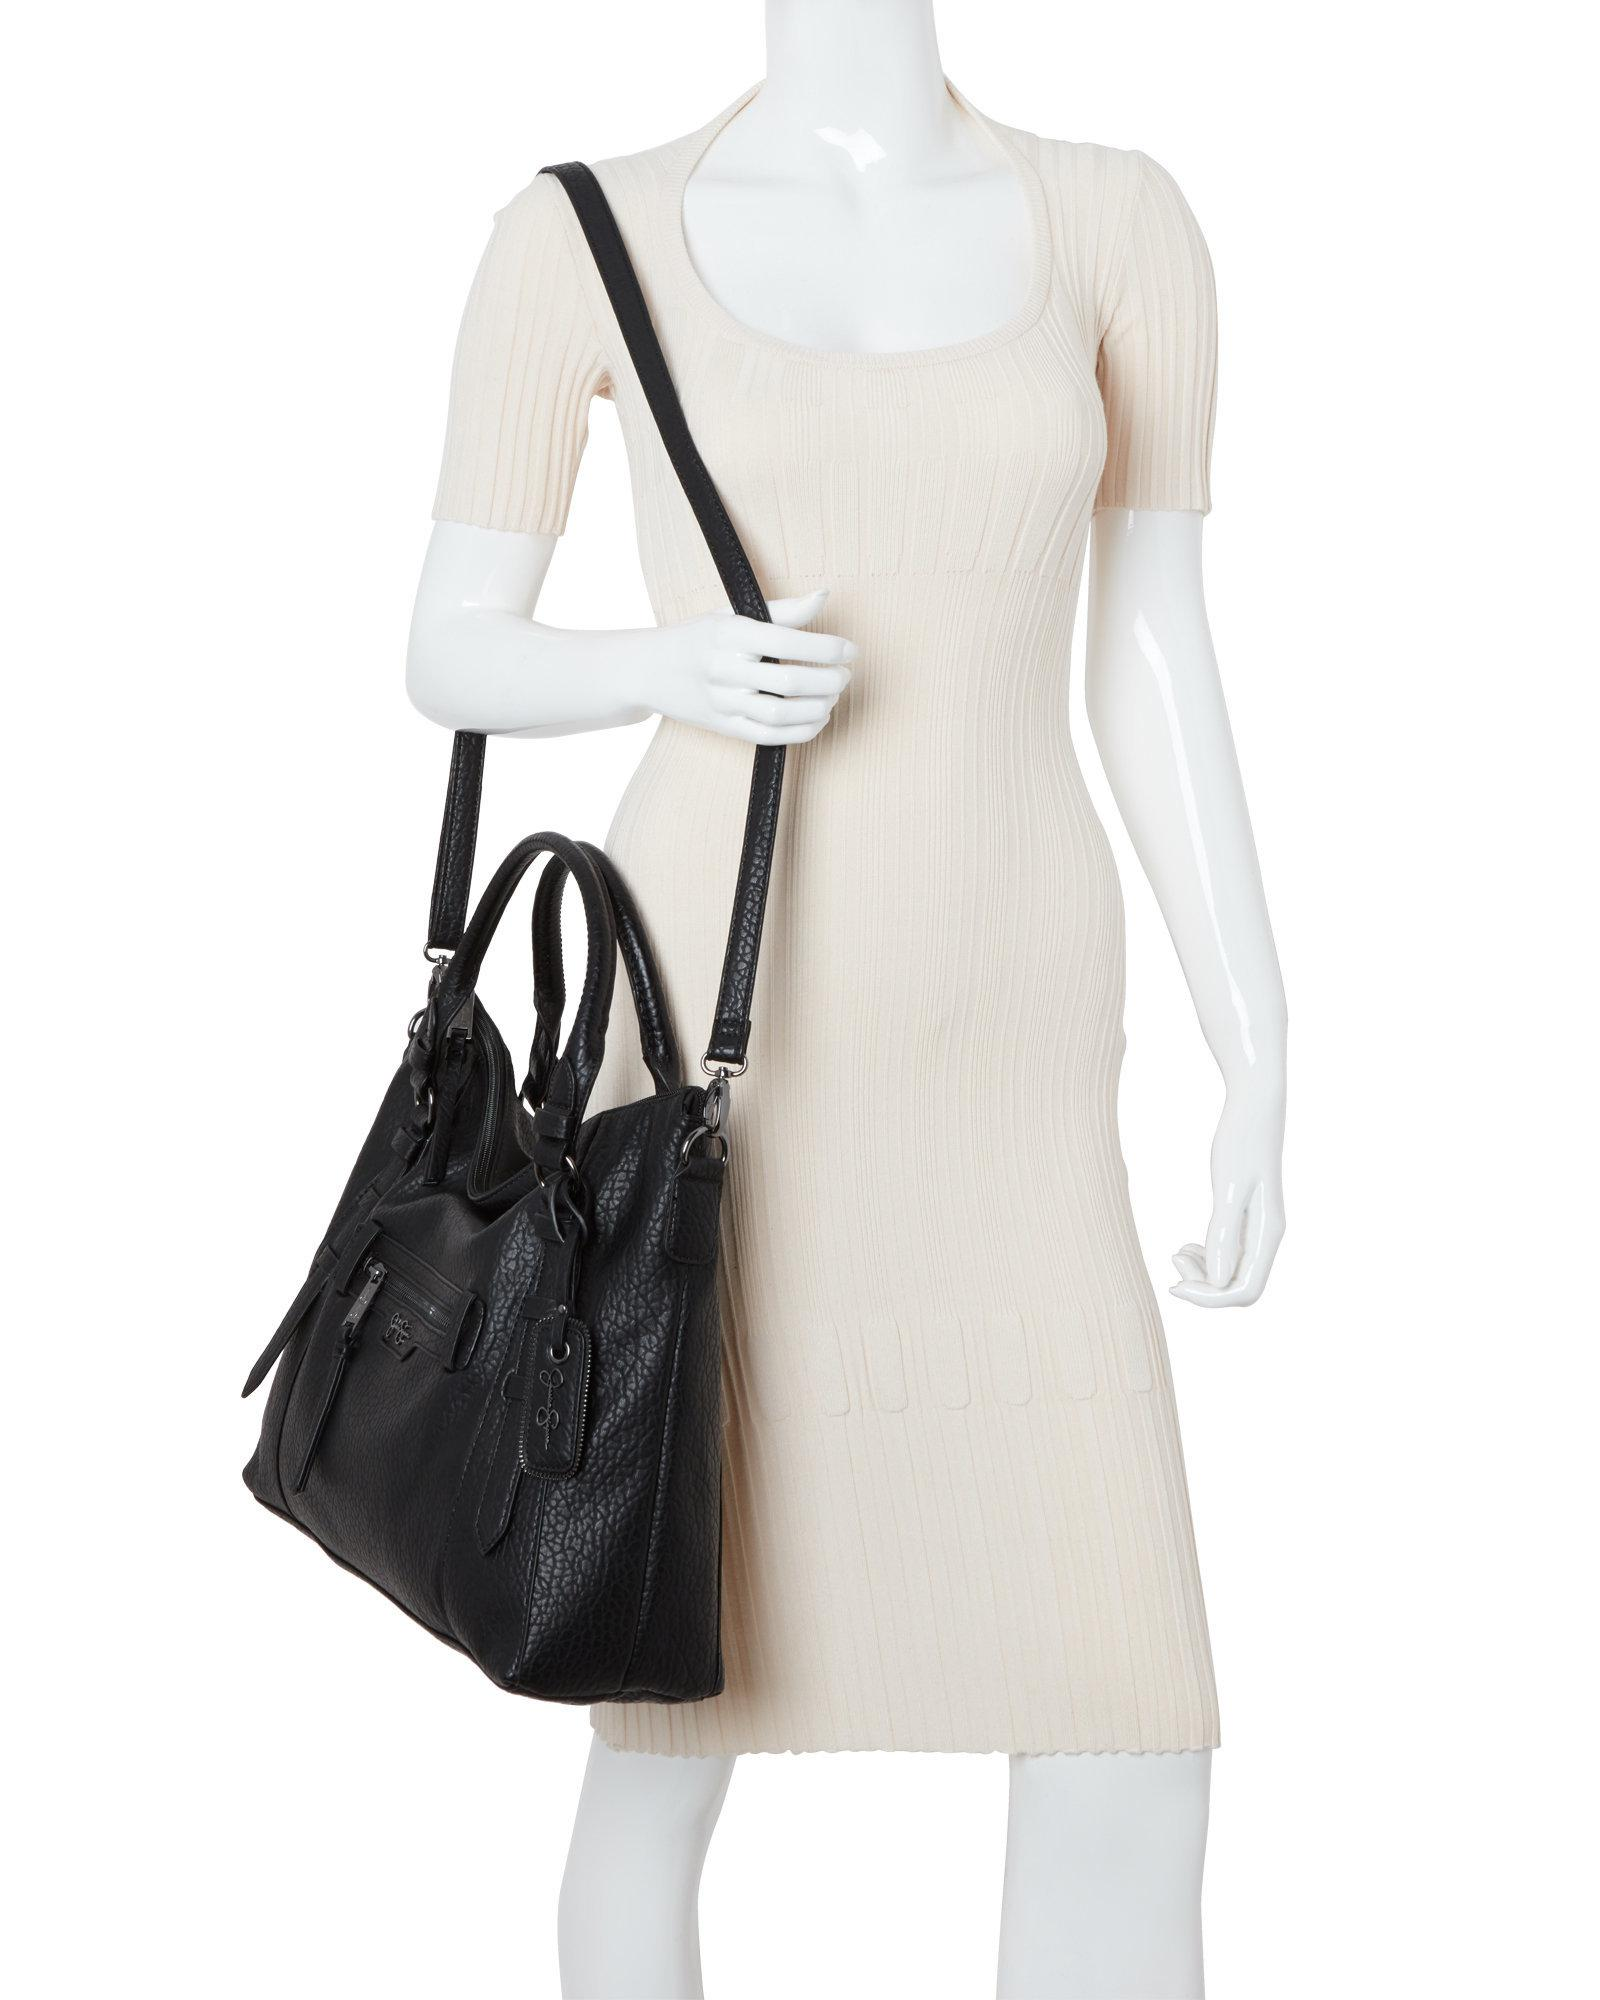 f6eaed5ab2a Jessica Simpson Black Everly Large Tote